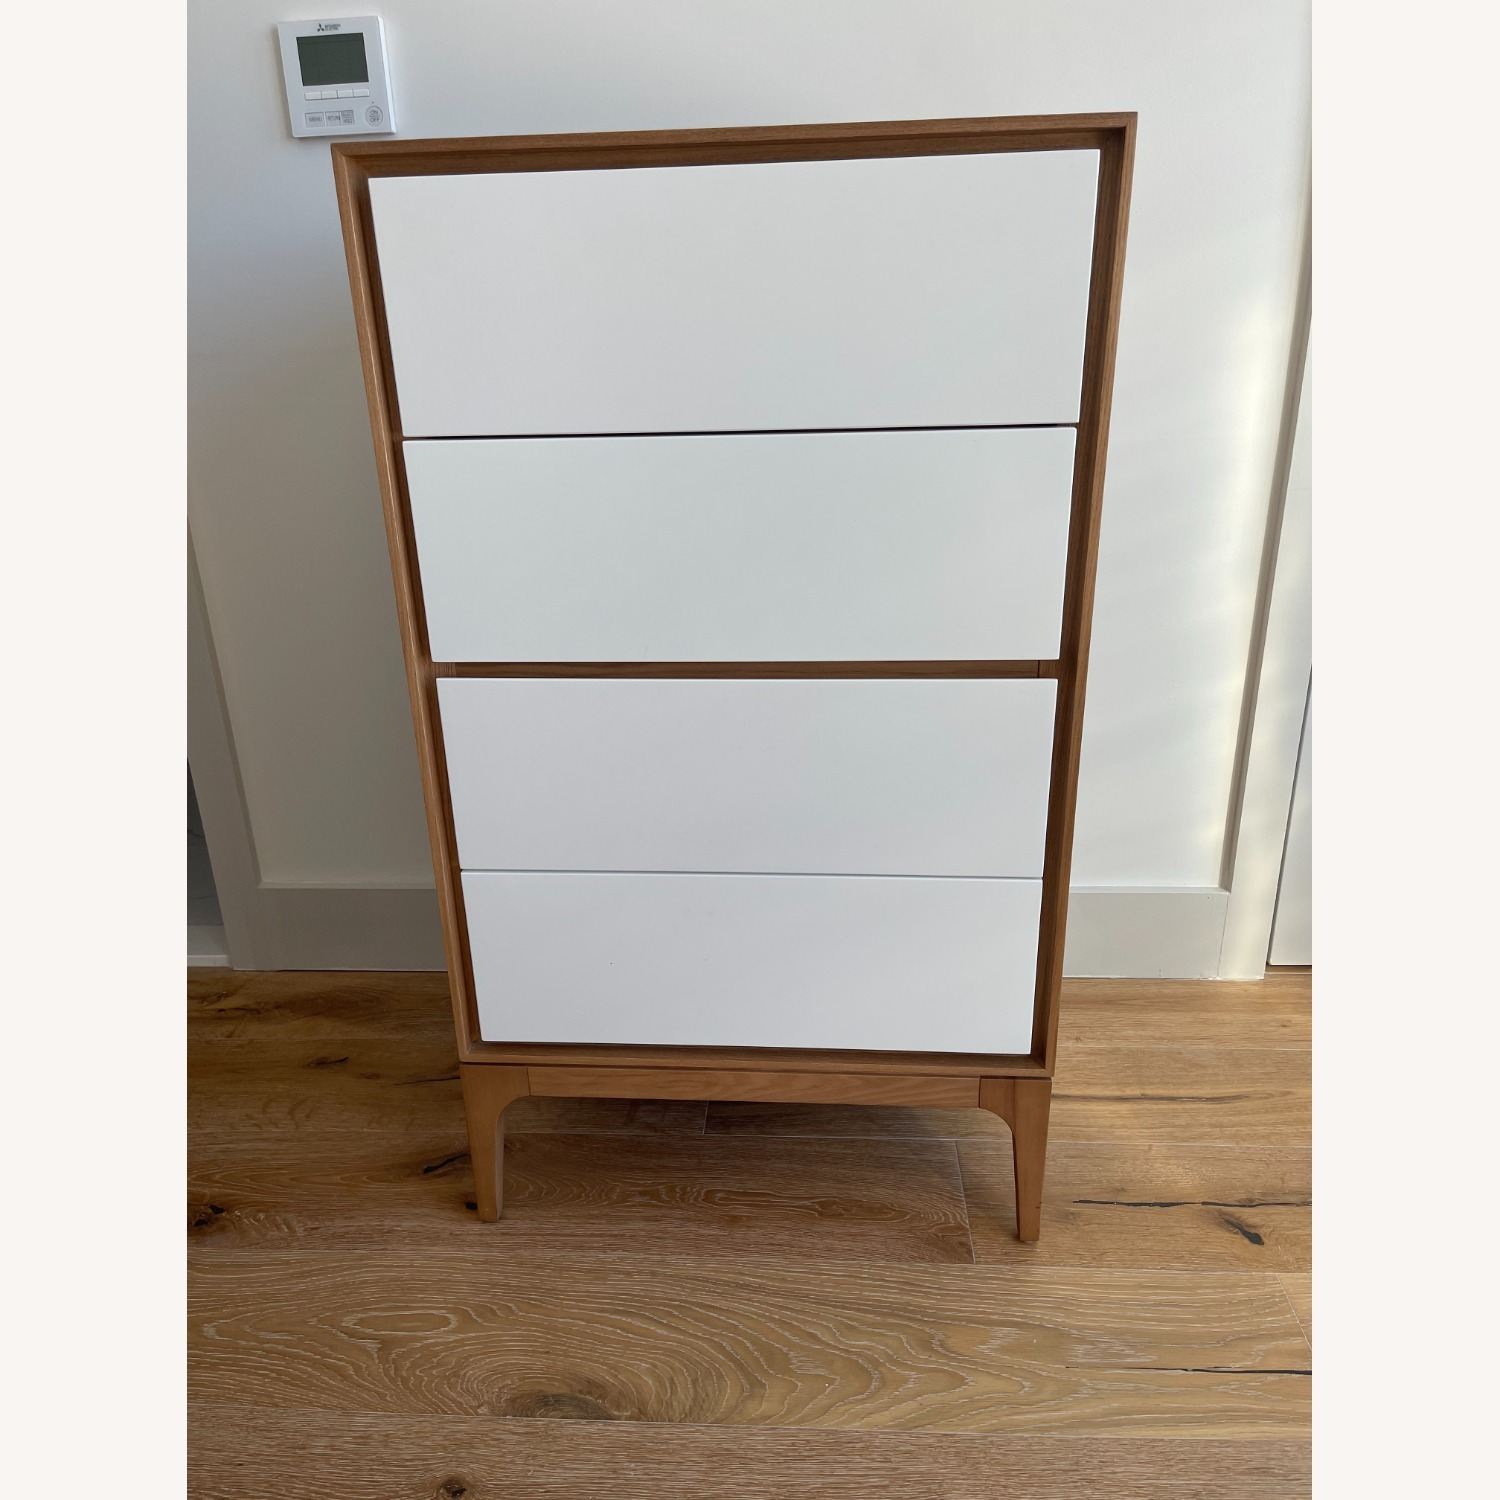 Rove Concepts 2X Wooden Dressers with White Drawers - image-1